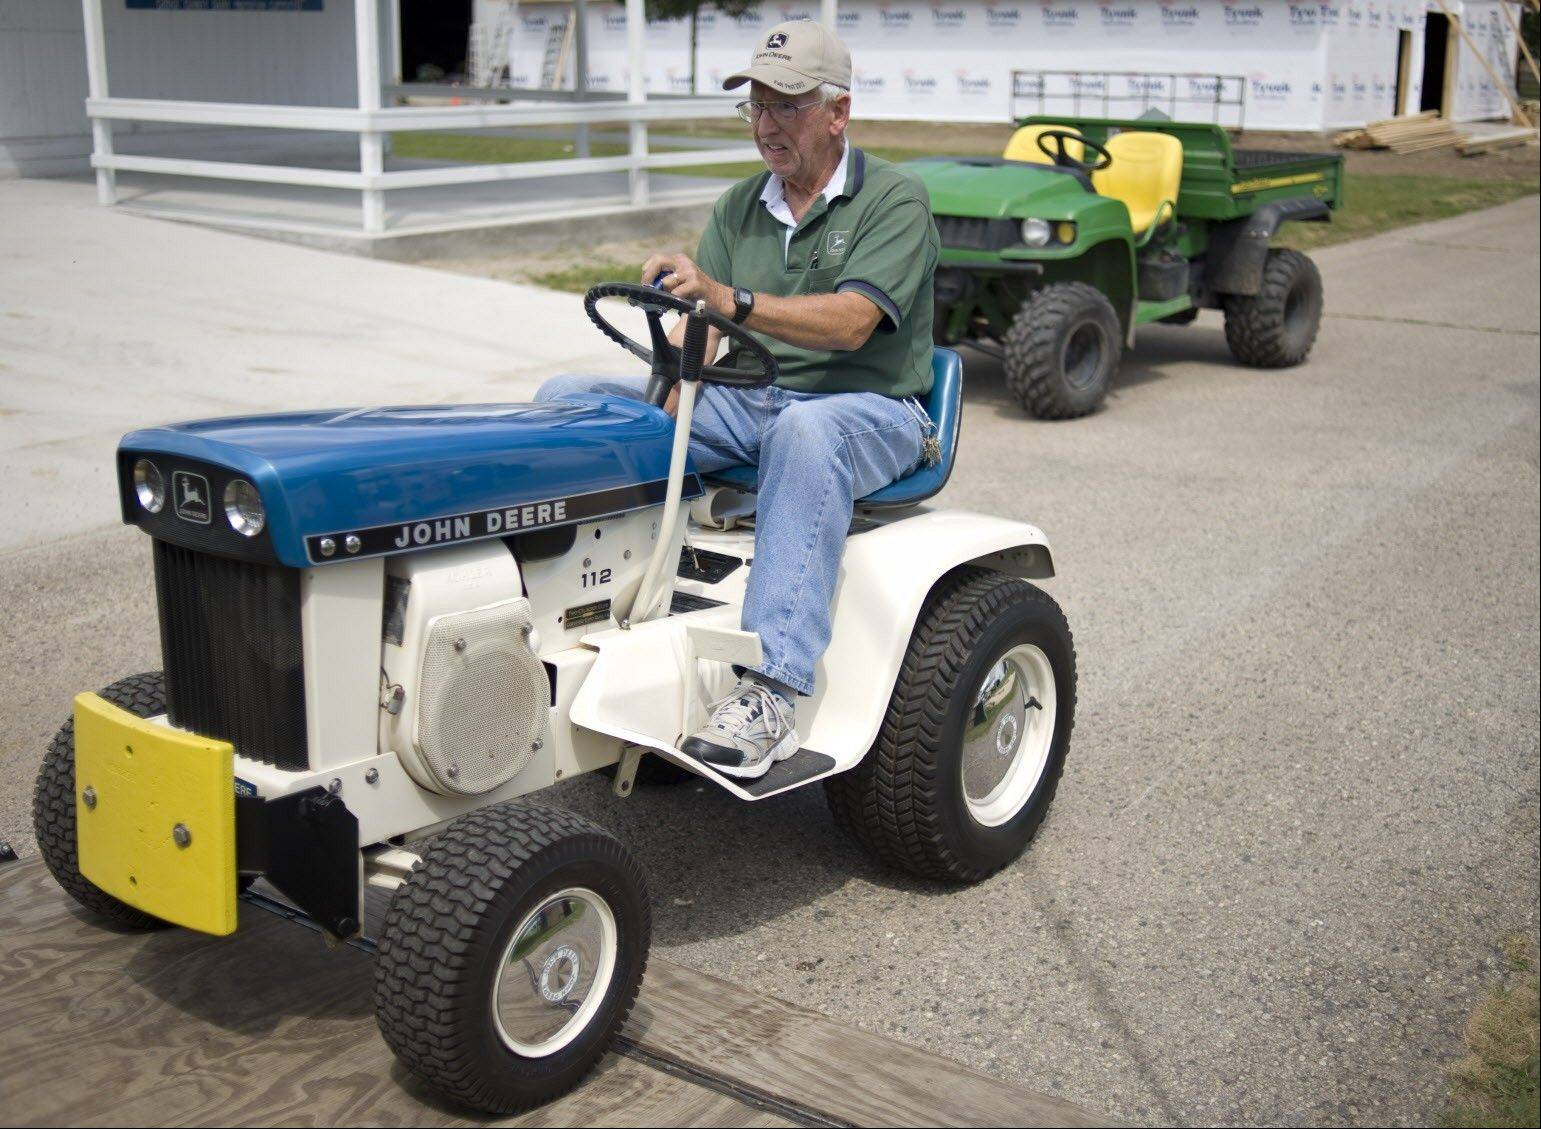 Mark Reading drives a 1963 John Deere 110 model at the Dodge County Fairgrounds Wednesday, July 24, 2013 in Beaver Dam, Wisc.